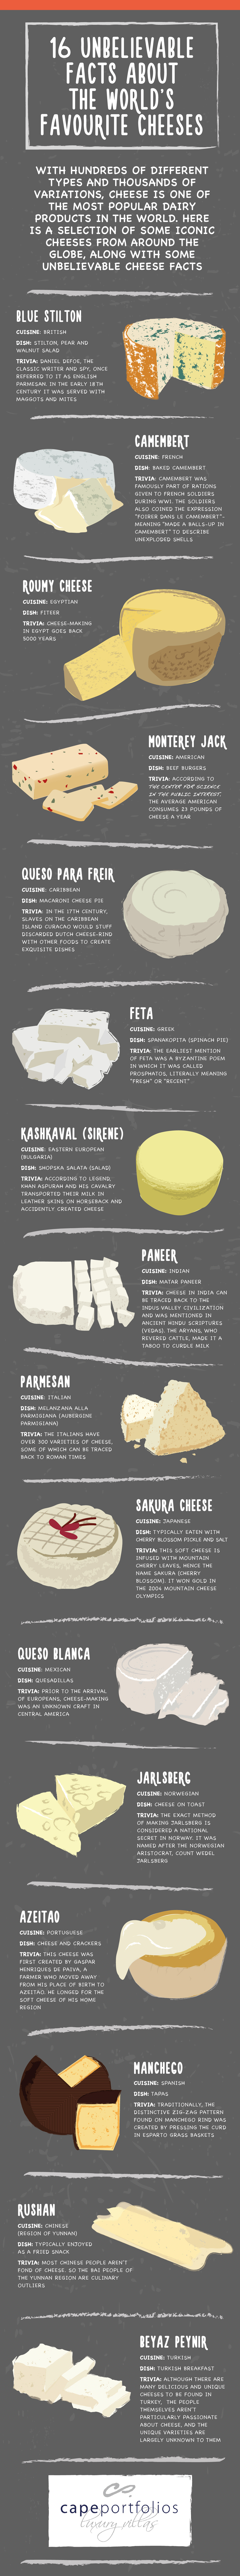 16 Cheese Facts